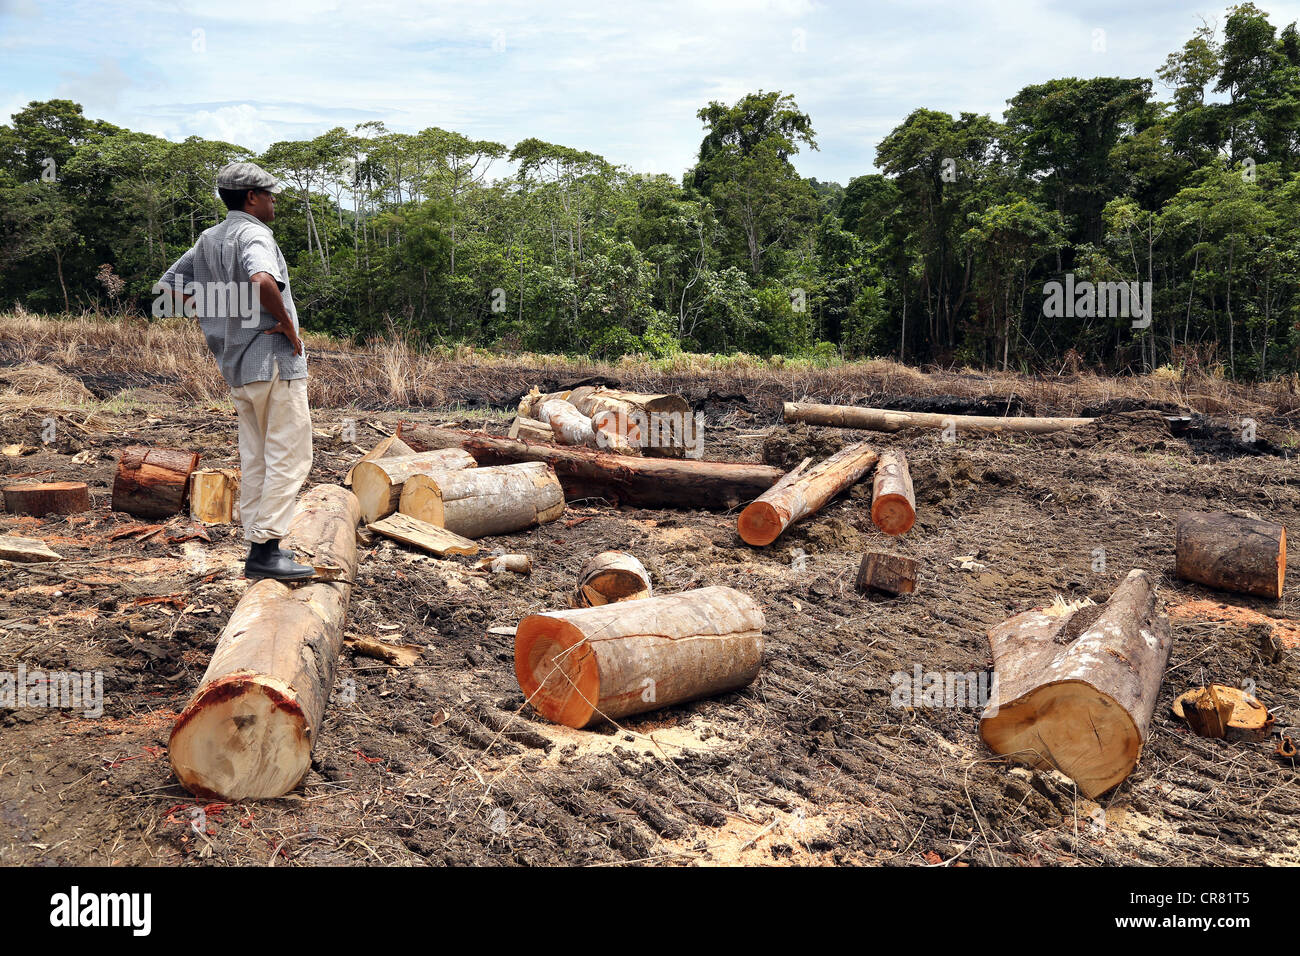 Lumberjack in a clearing of a log area, province of Madang, Papua Neuguinea Stock Photo